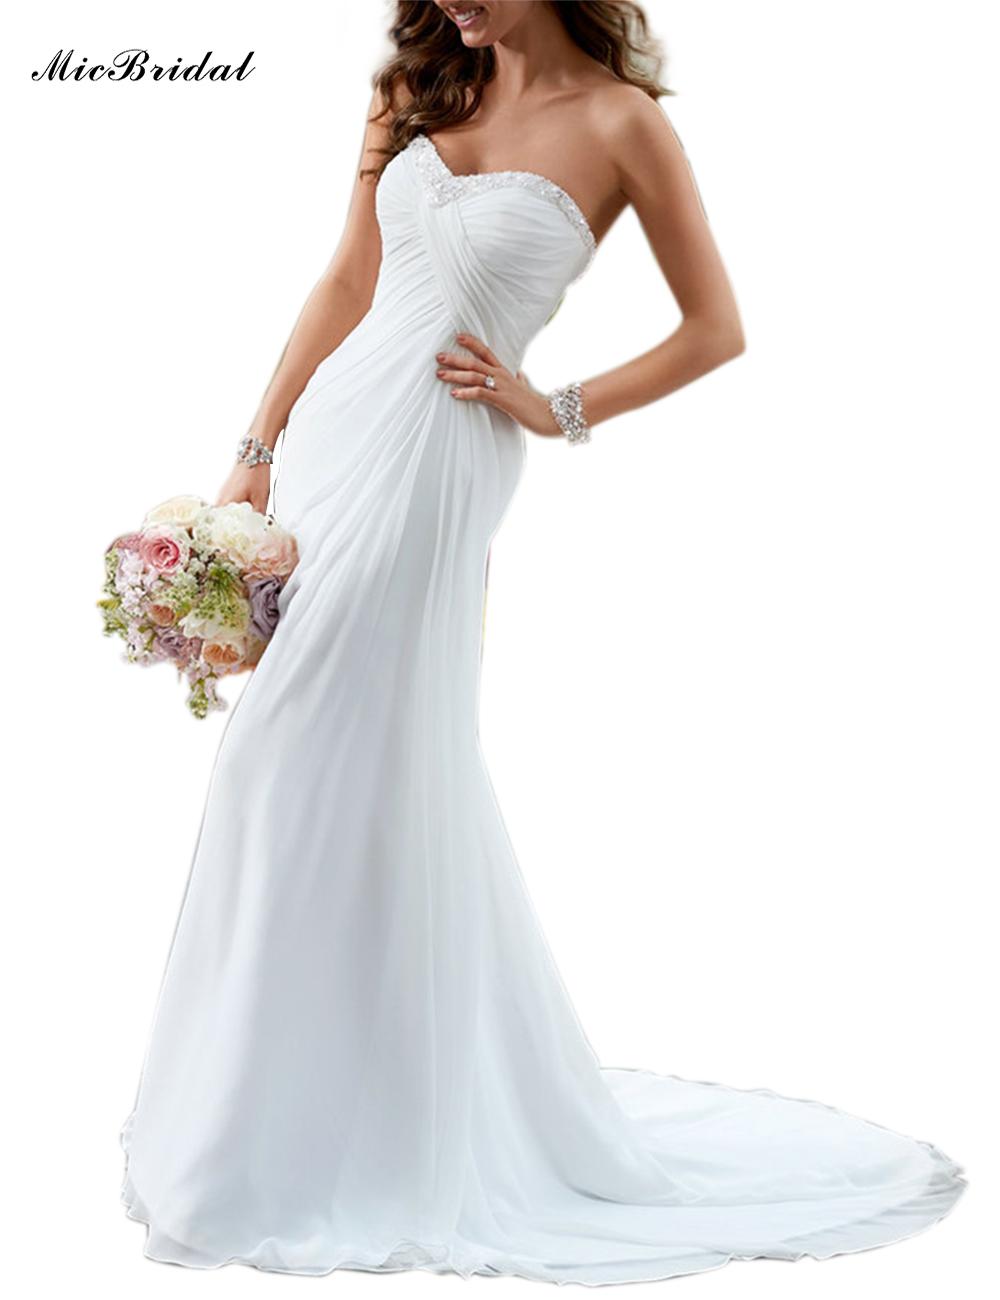 Micbridal Cheap Chiffon A Line Wedding Dress Made In China